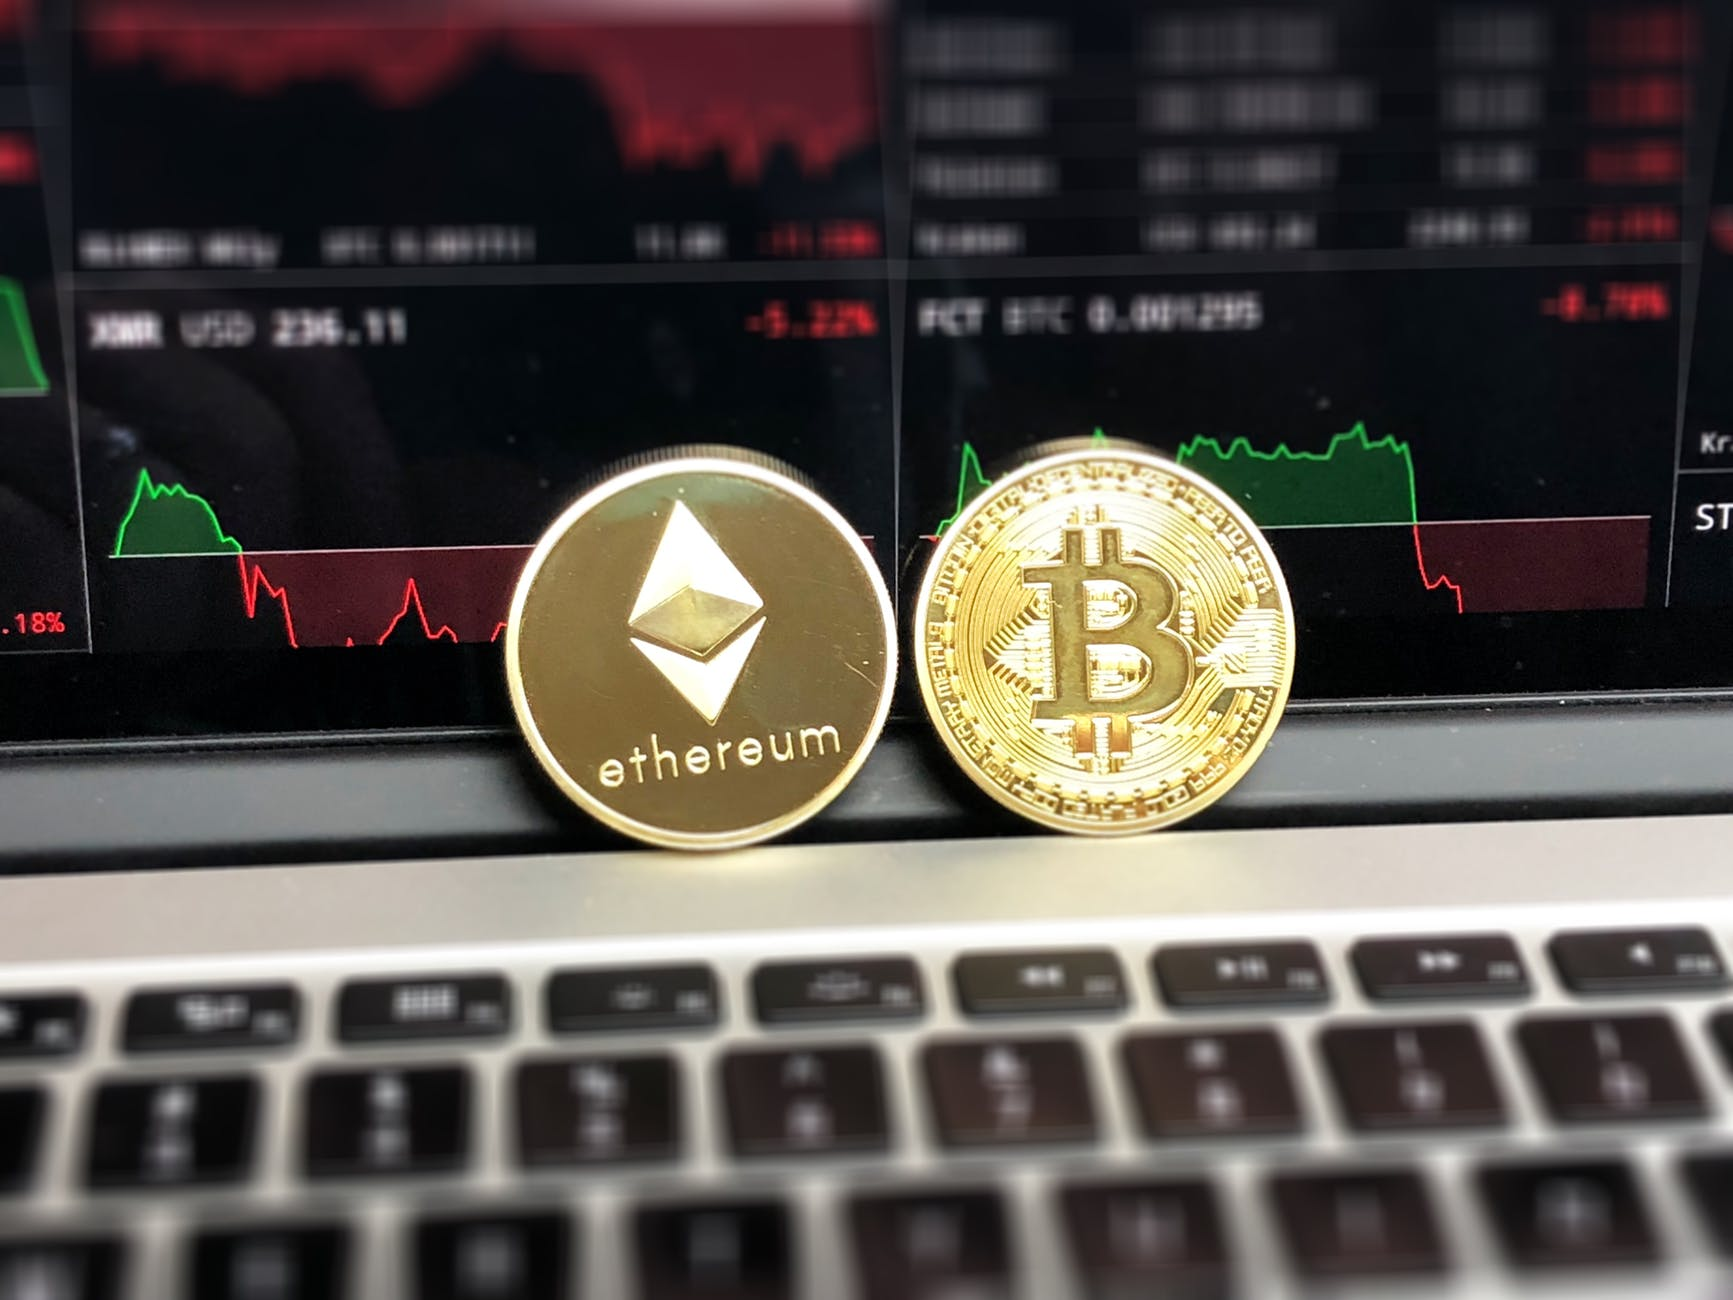 ethereum and bitcoin emblems